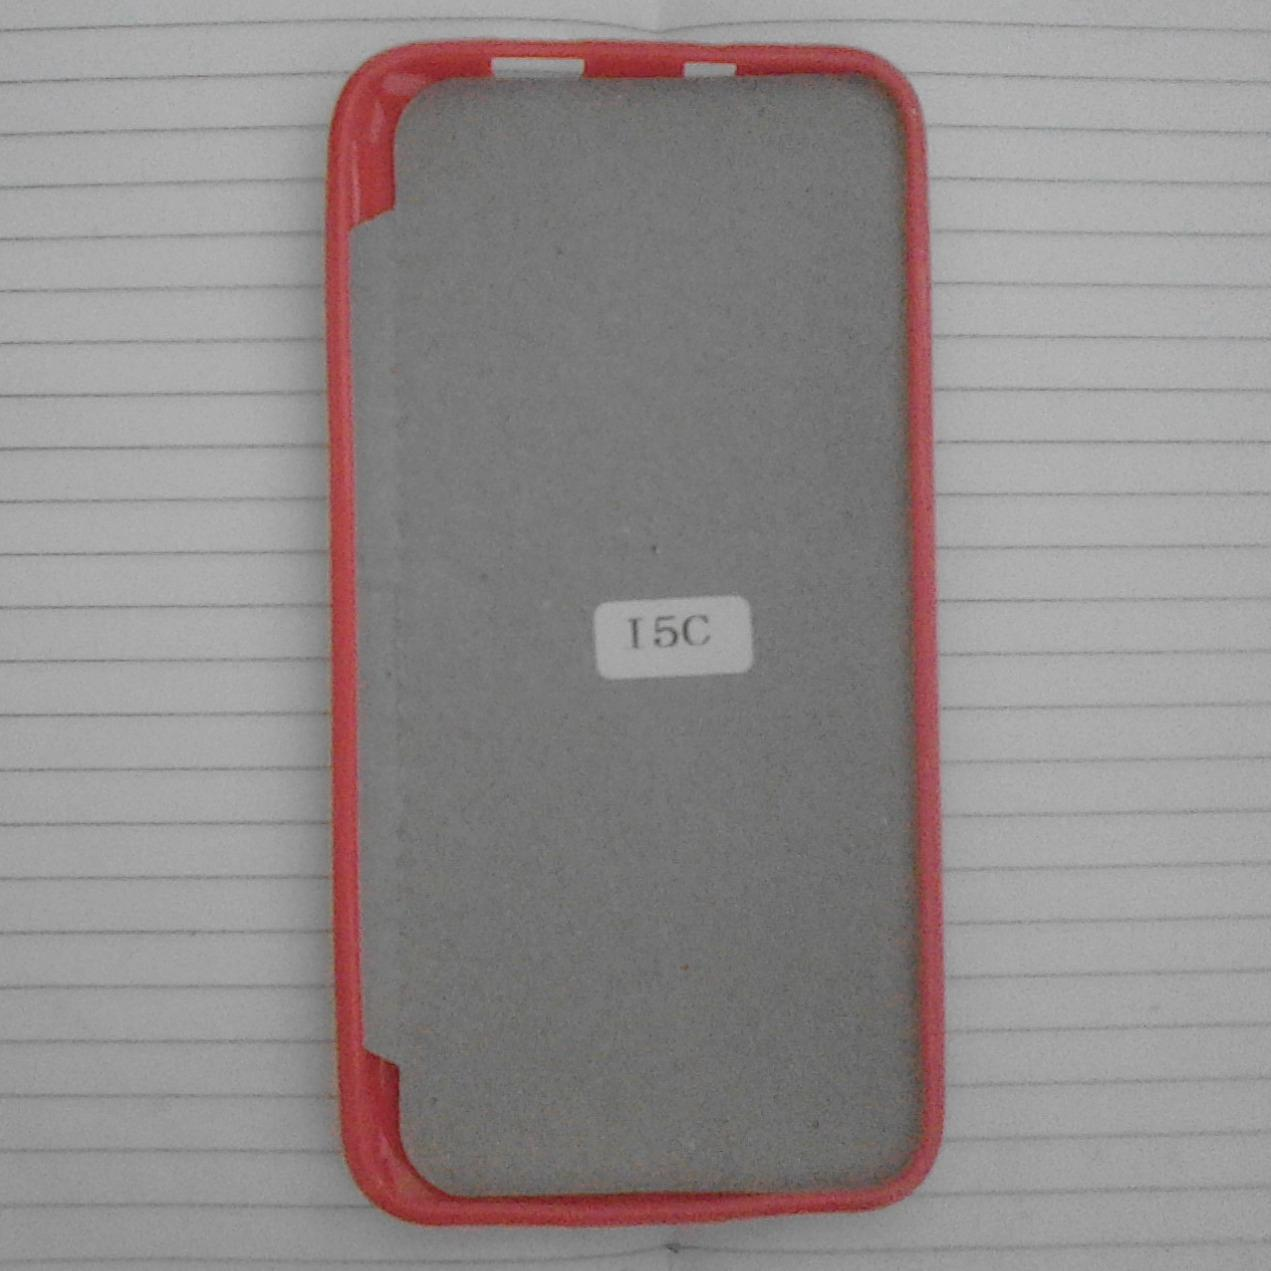 Gambar Produk Rinci Softcase Advan i5c Softcover Kondom Silicon Case Silikon Jelly Case Adven Adfan i